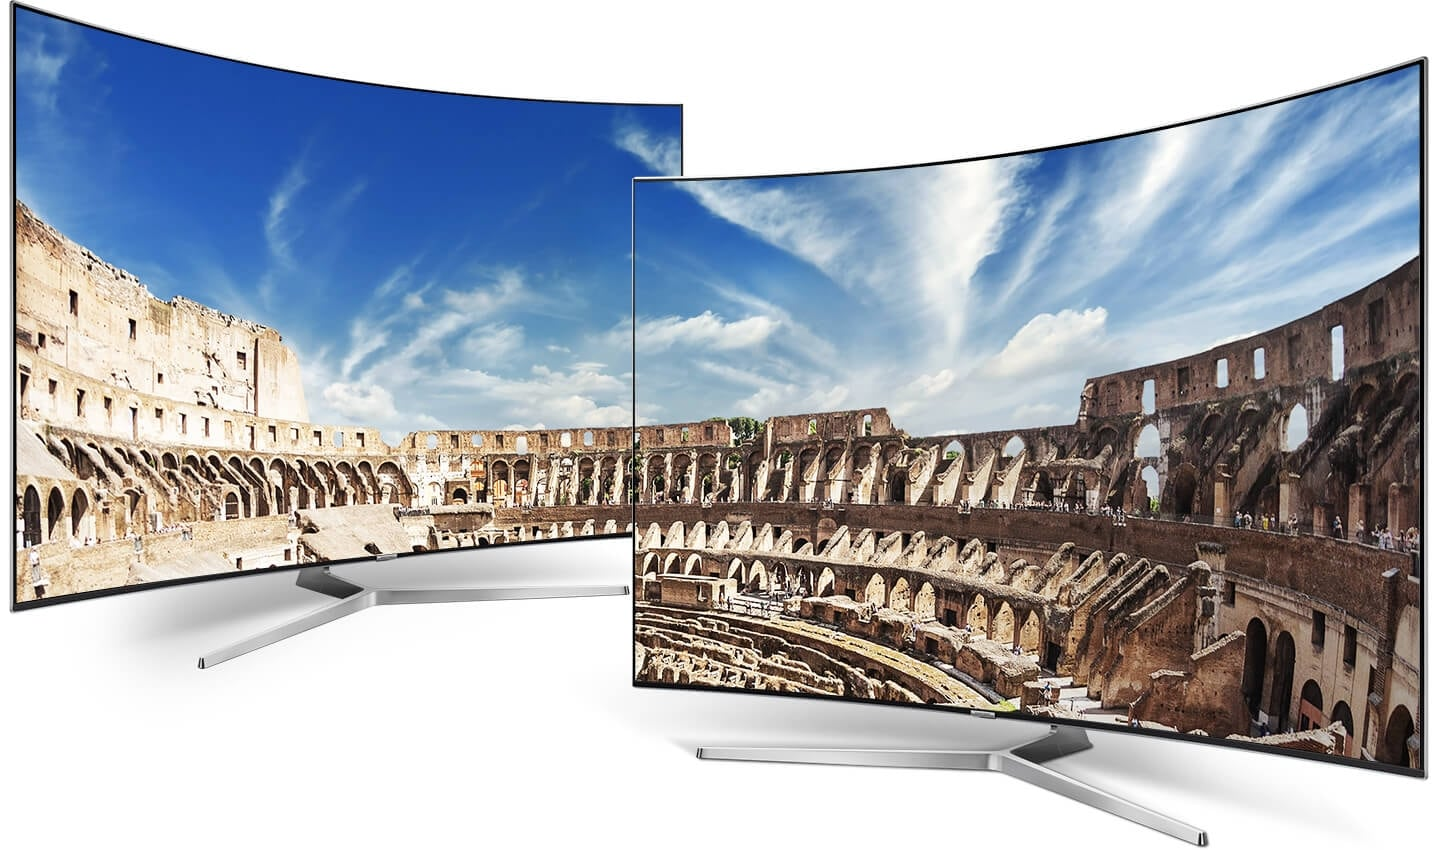 Two curved Samsung TVs are standing and an amphitheater image is on a TV screen.